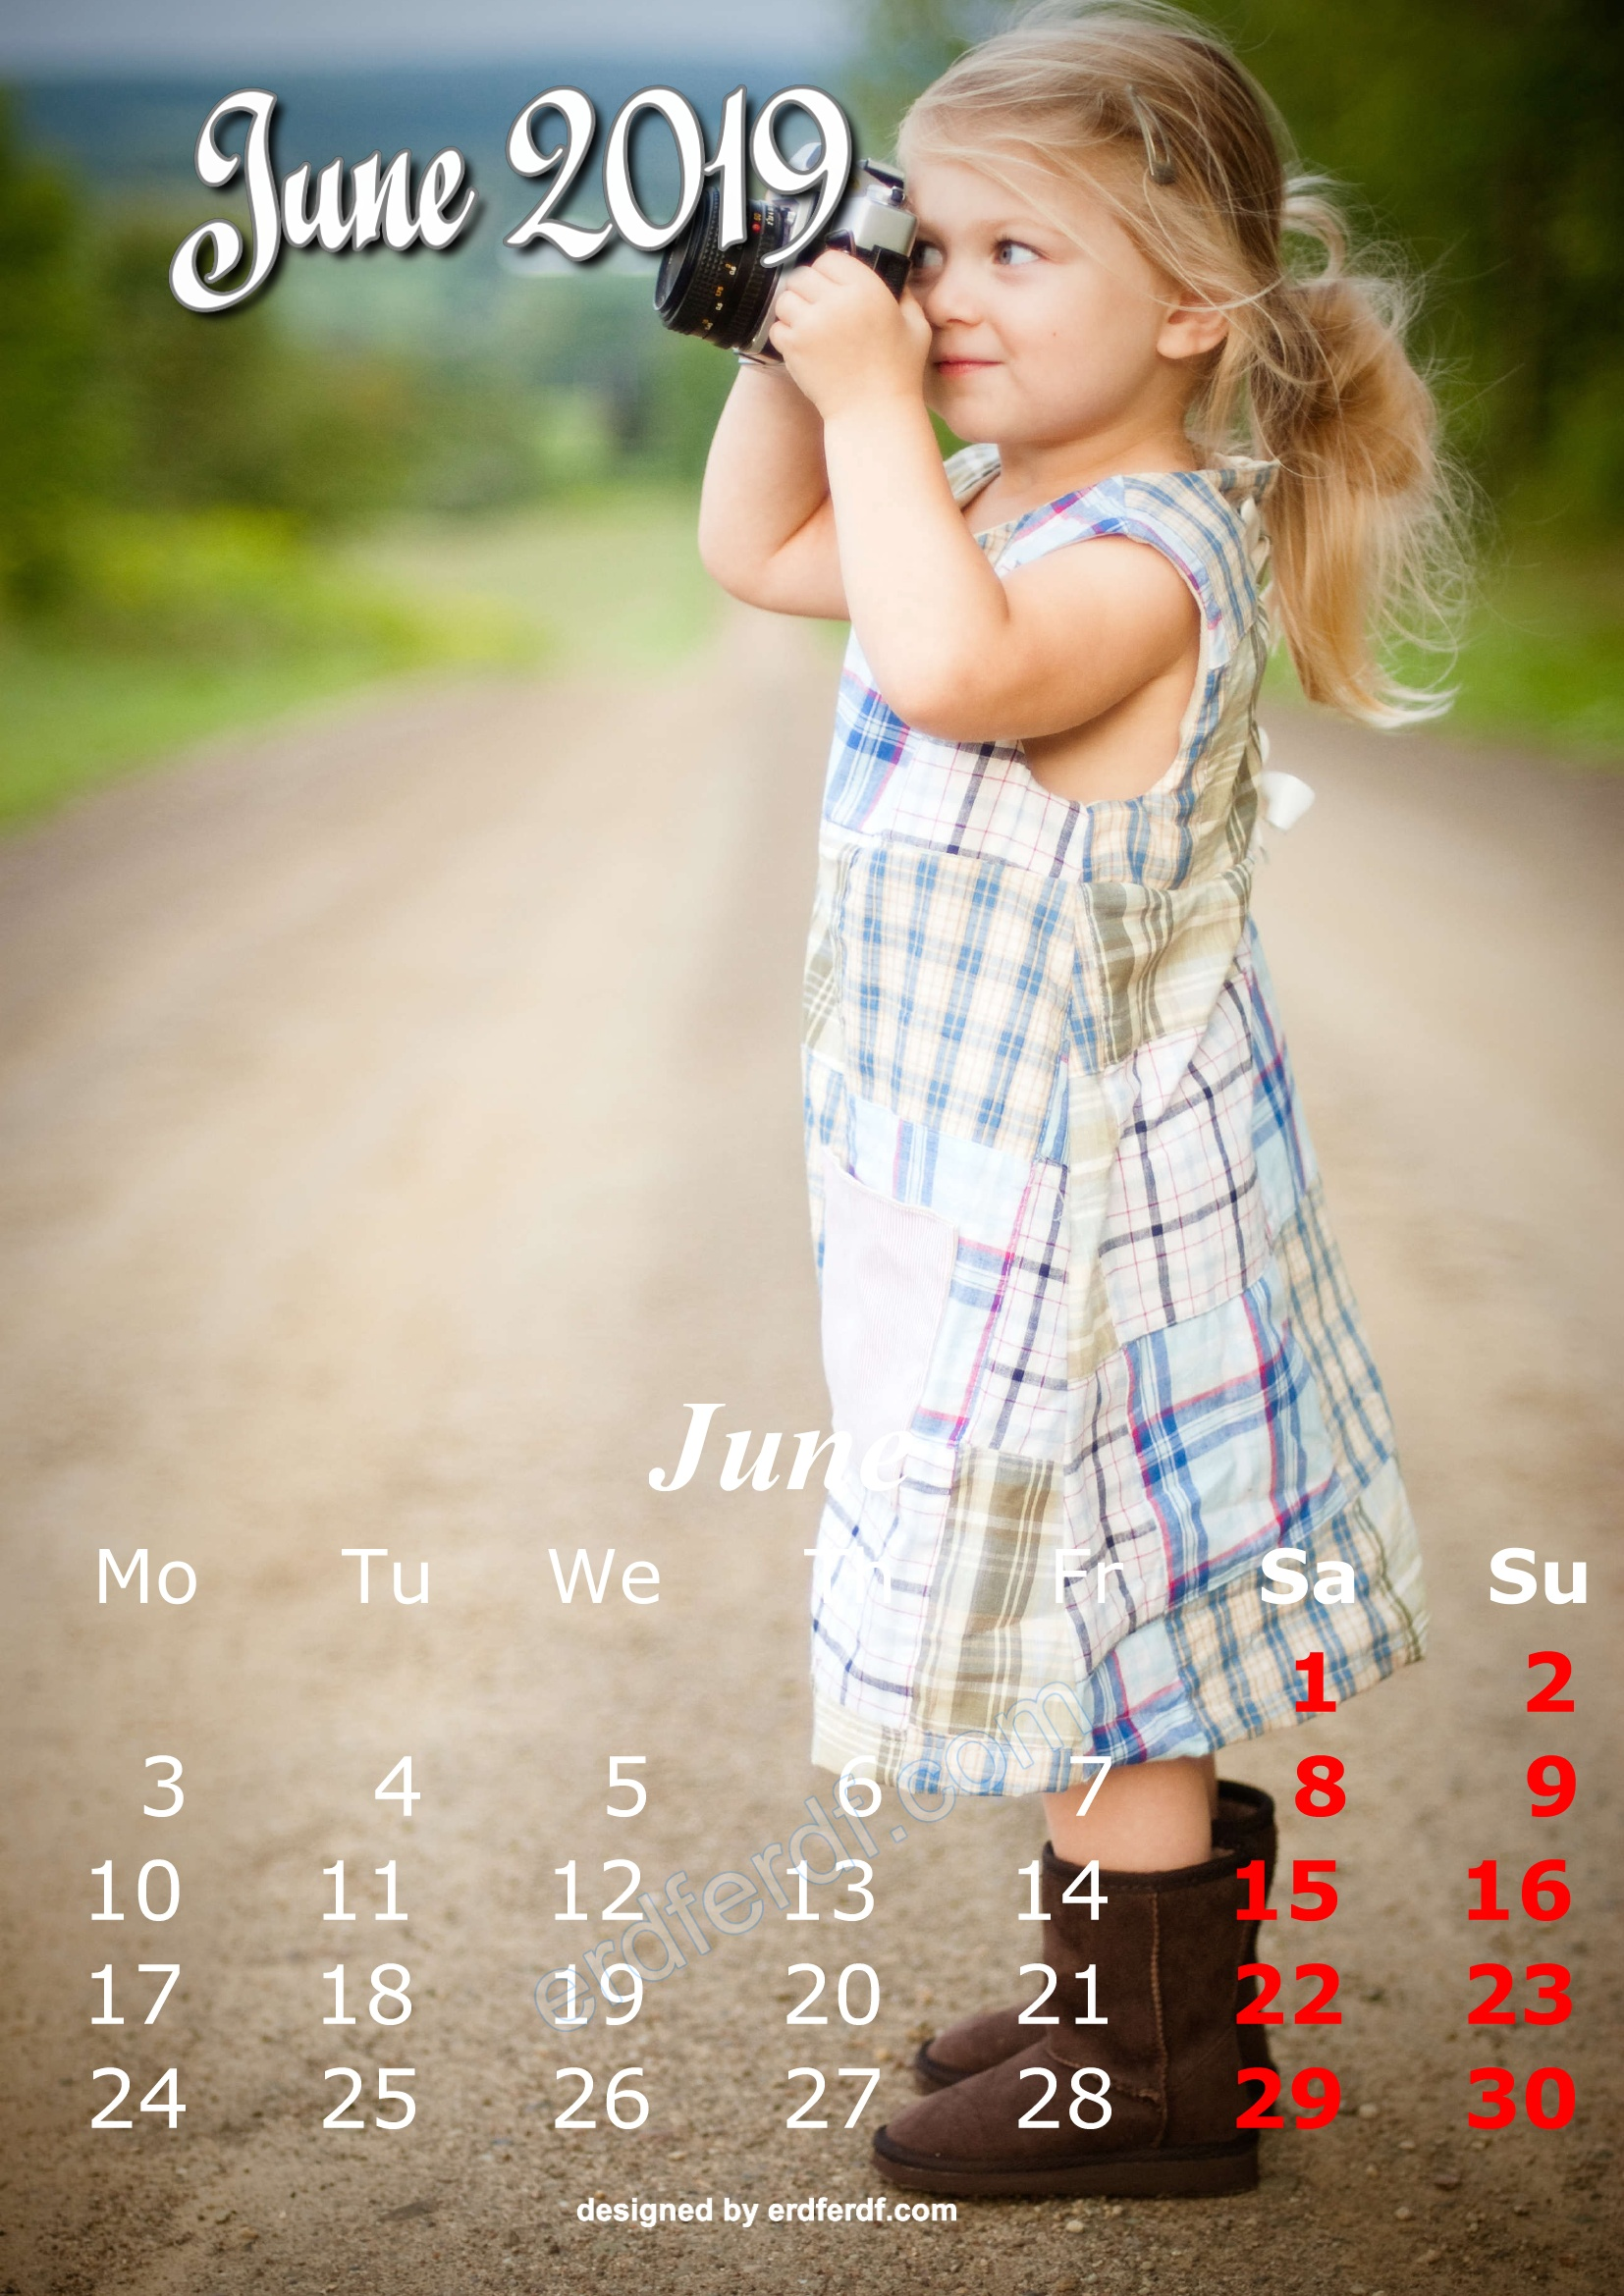 6 June Cute Kids Calendar 2019 Printable Free Design